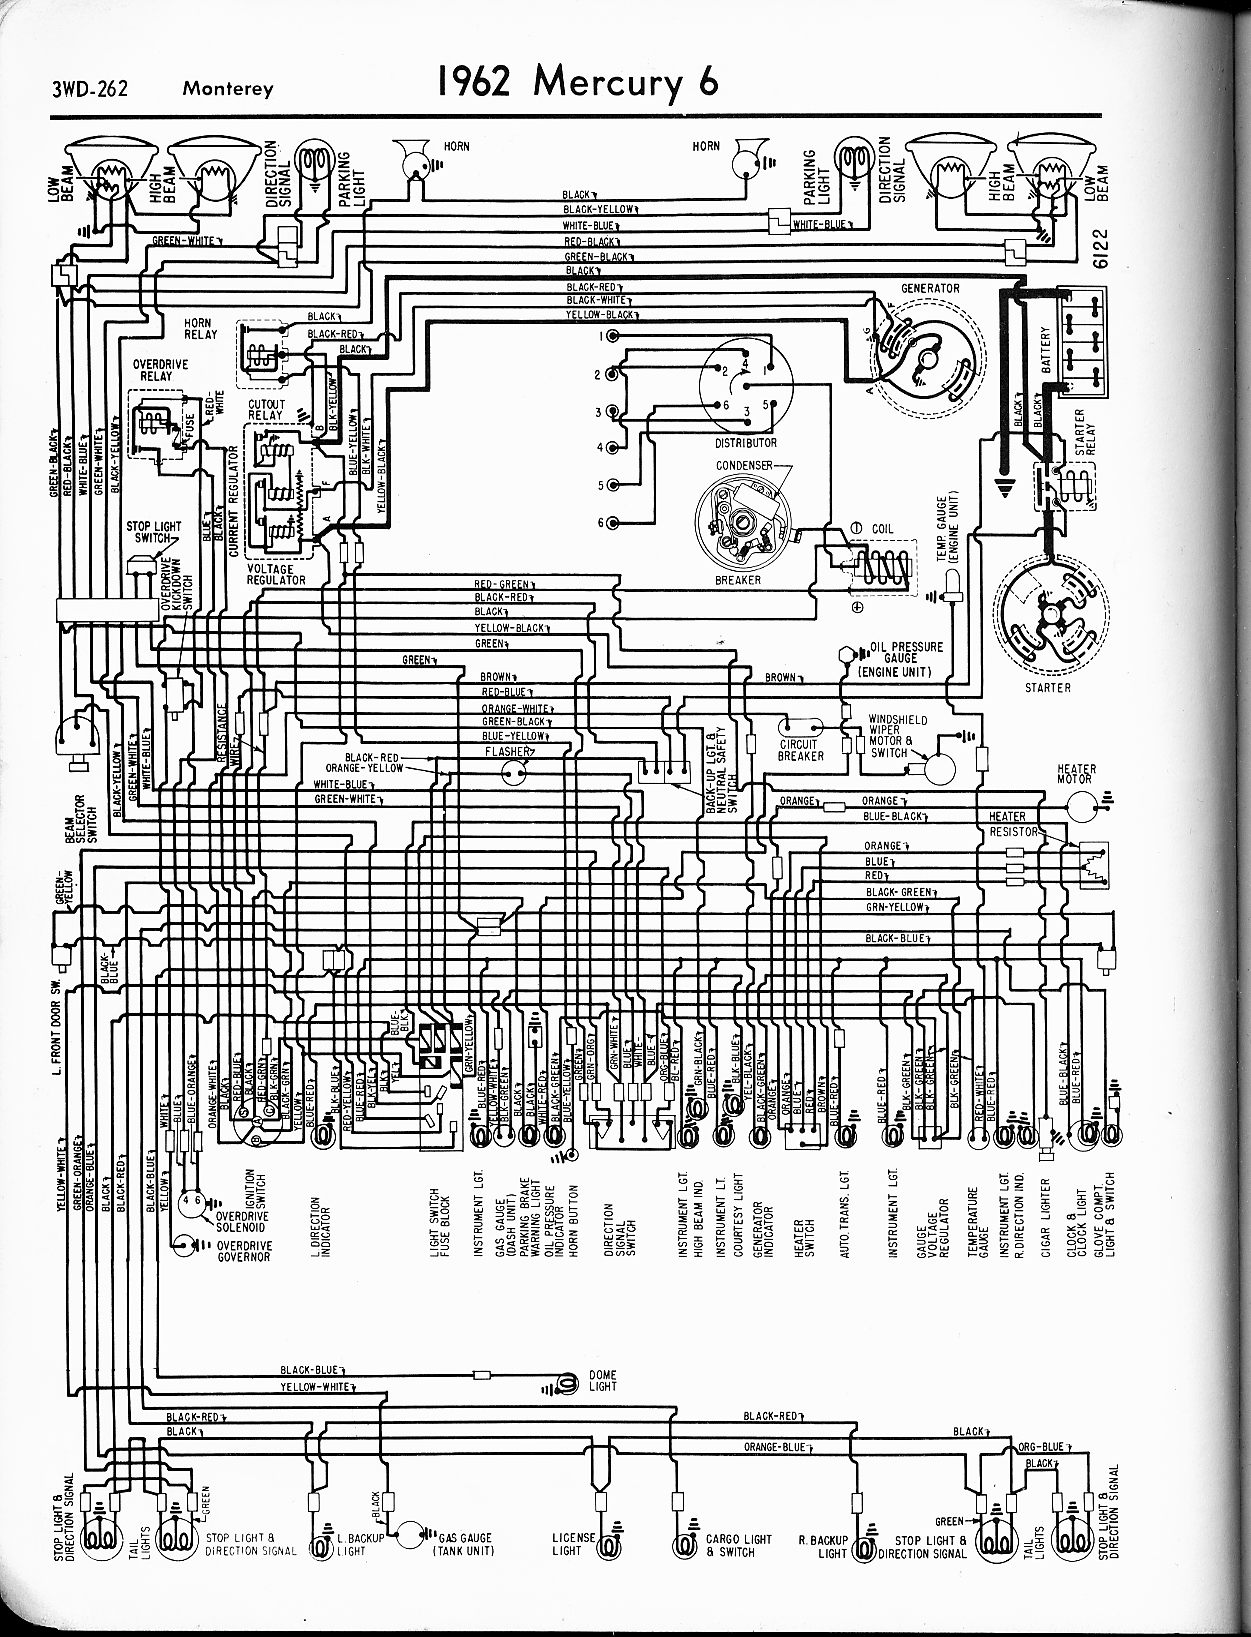 1964 Mercury Fuse Box Diagram Wiring Library 2000 Mazda 626 Fusepanel2 Impression 1962 6 Monterey